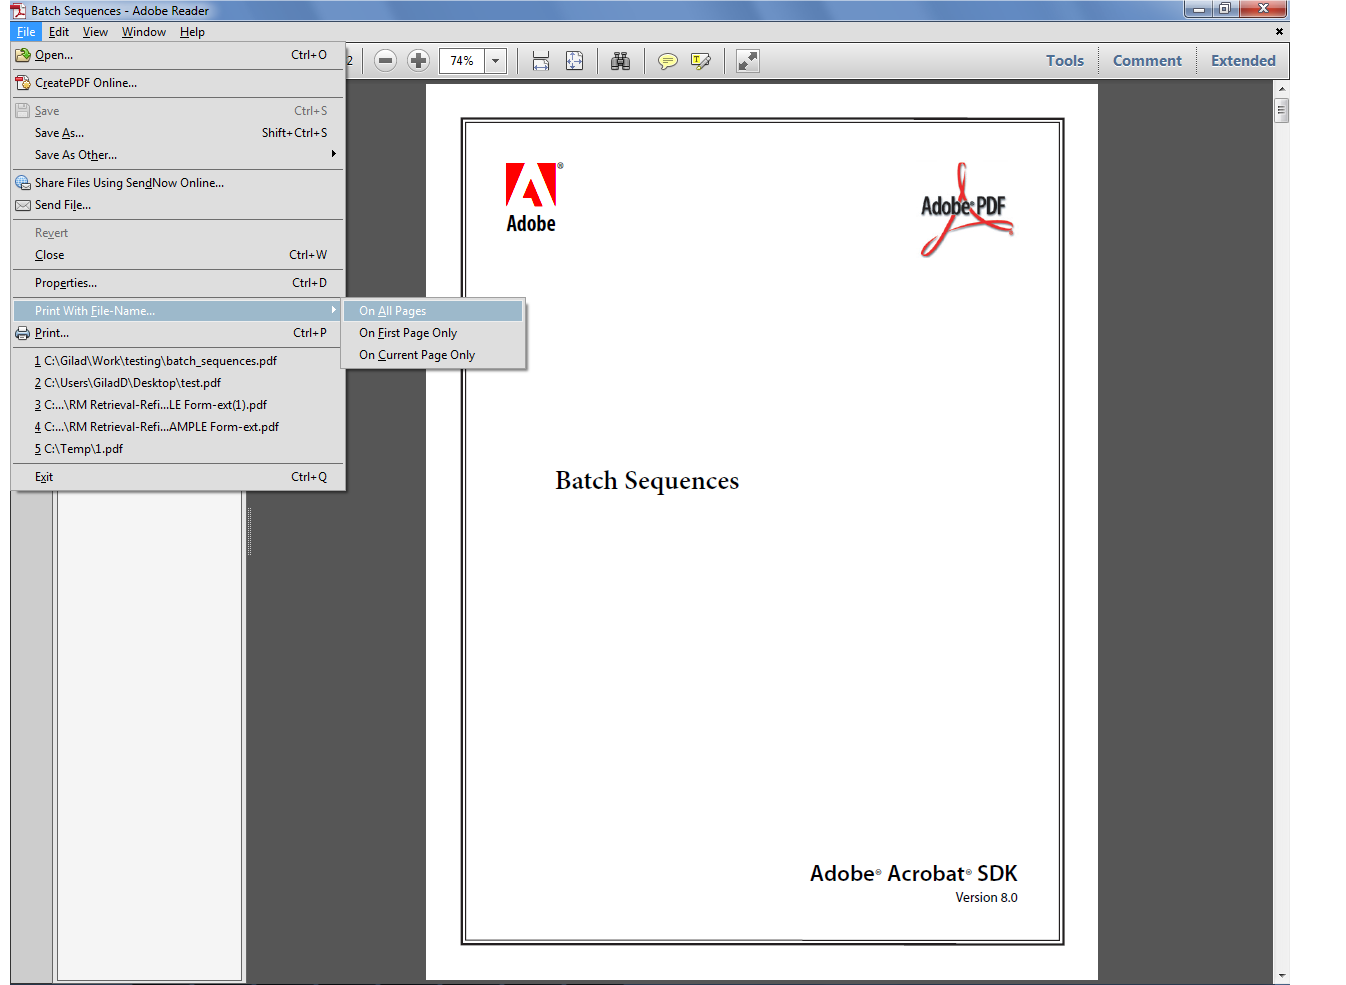 Custom-made Adobe Scripts: Acrobat/Reader -- Print PDF With File Name